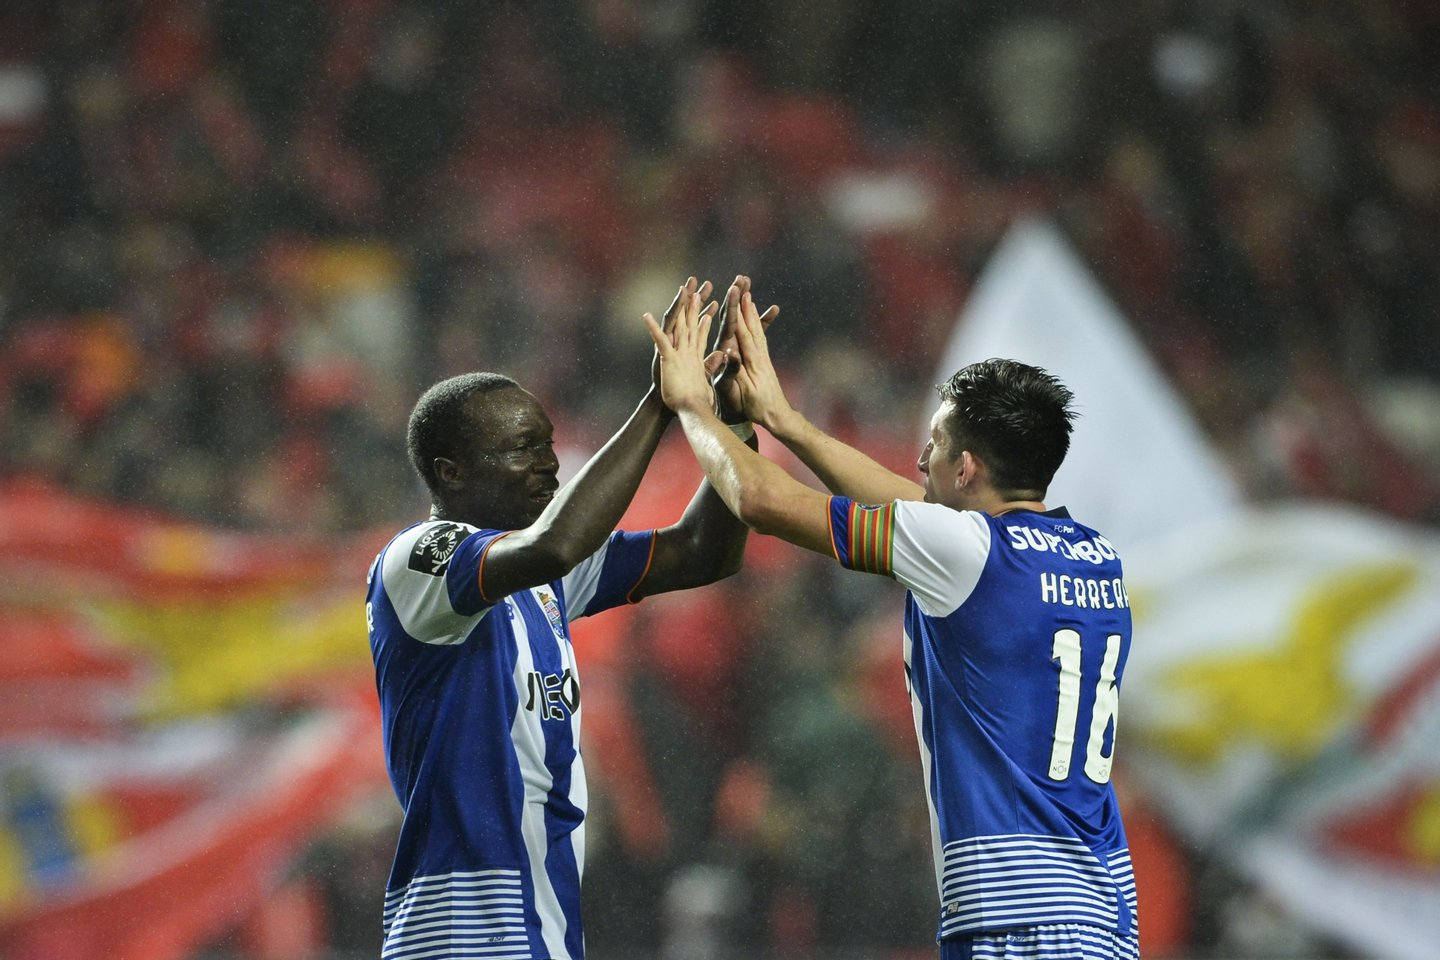 Porto's Cameroonian forward Vincent Aboubakar (L) celebrates a goal with teammate Porto's Mexican midfielder Hector Herrera during the Portuguese league football match SL Benfica vs FC Porto at the Luz stadium in Lisbon on February 12, 2016. / AFP / PATRICIA DE MELO MOREIRA (Photo credit should read PATRICIA DE MELO MOREIRA/AFP/Getty Images)